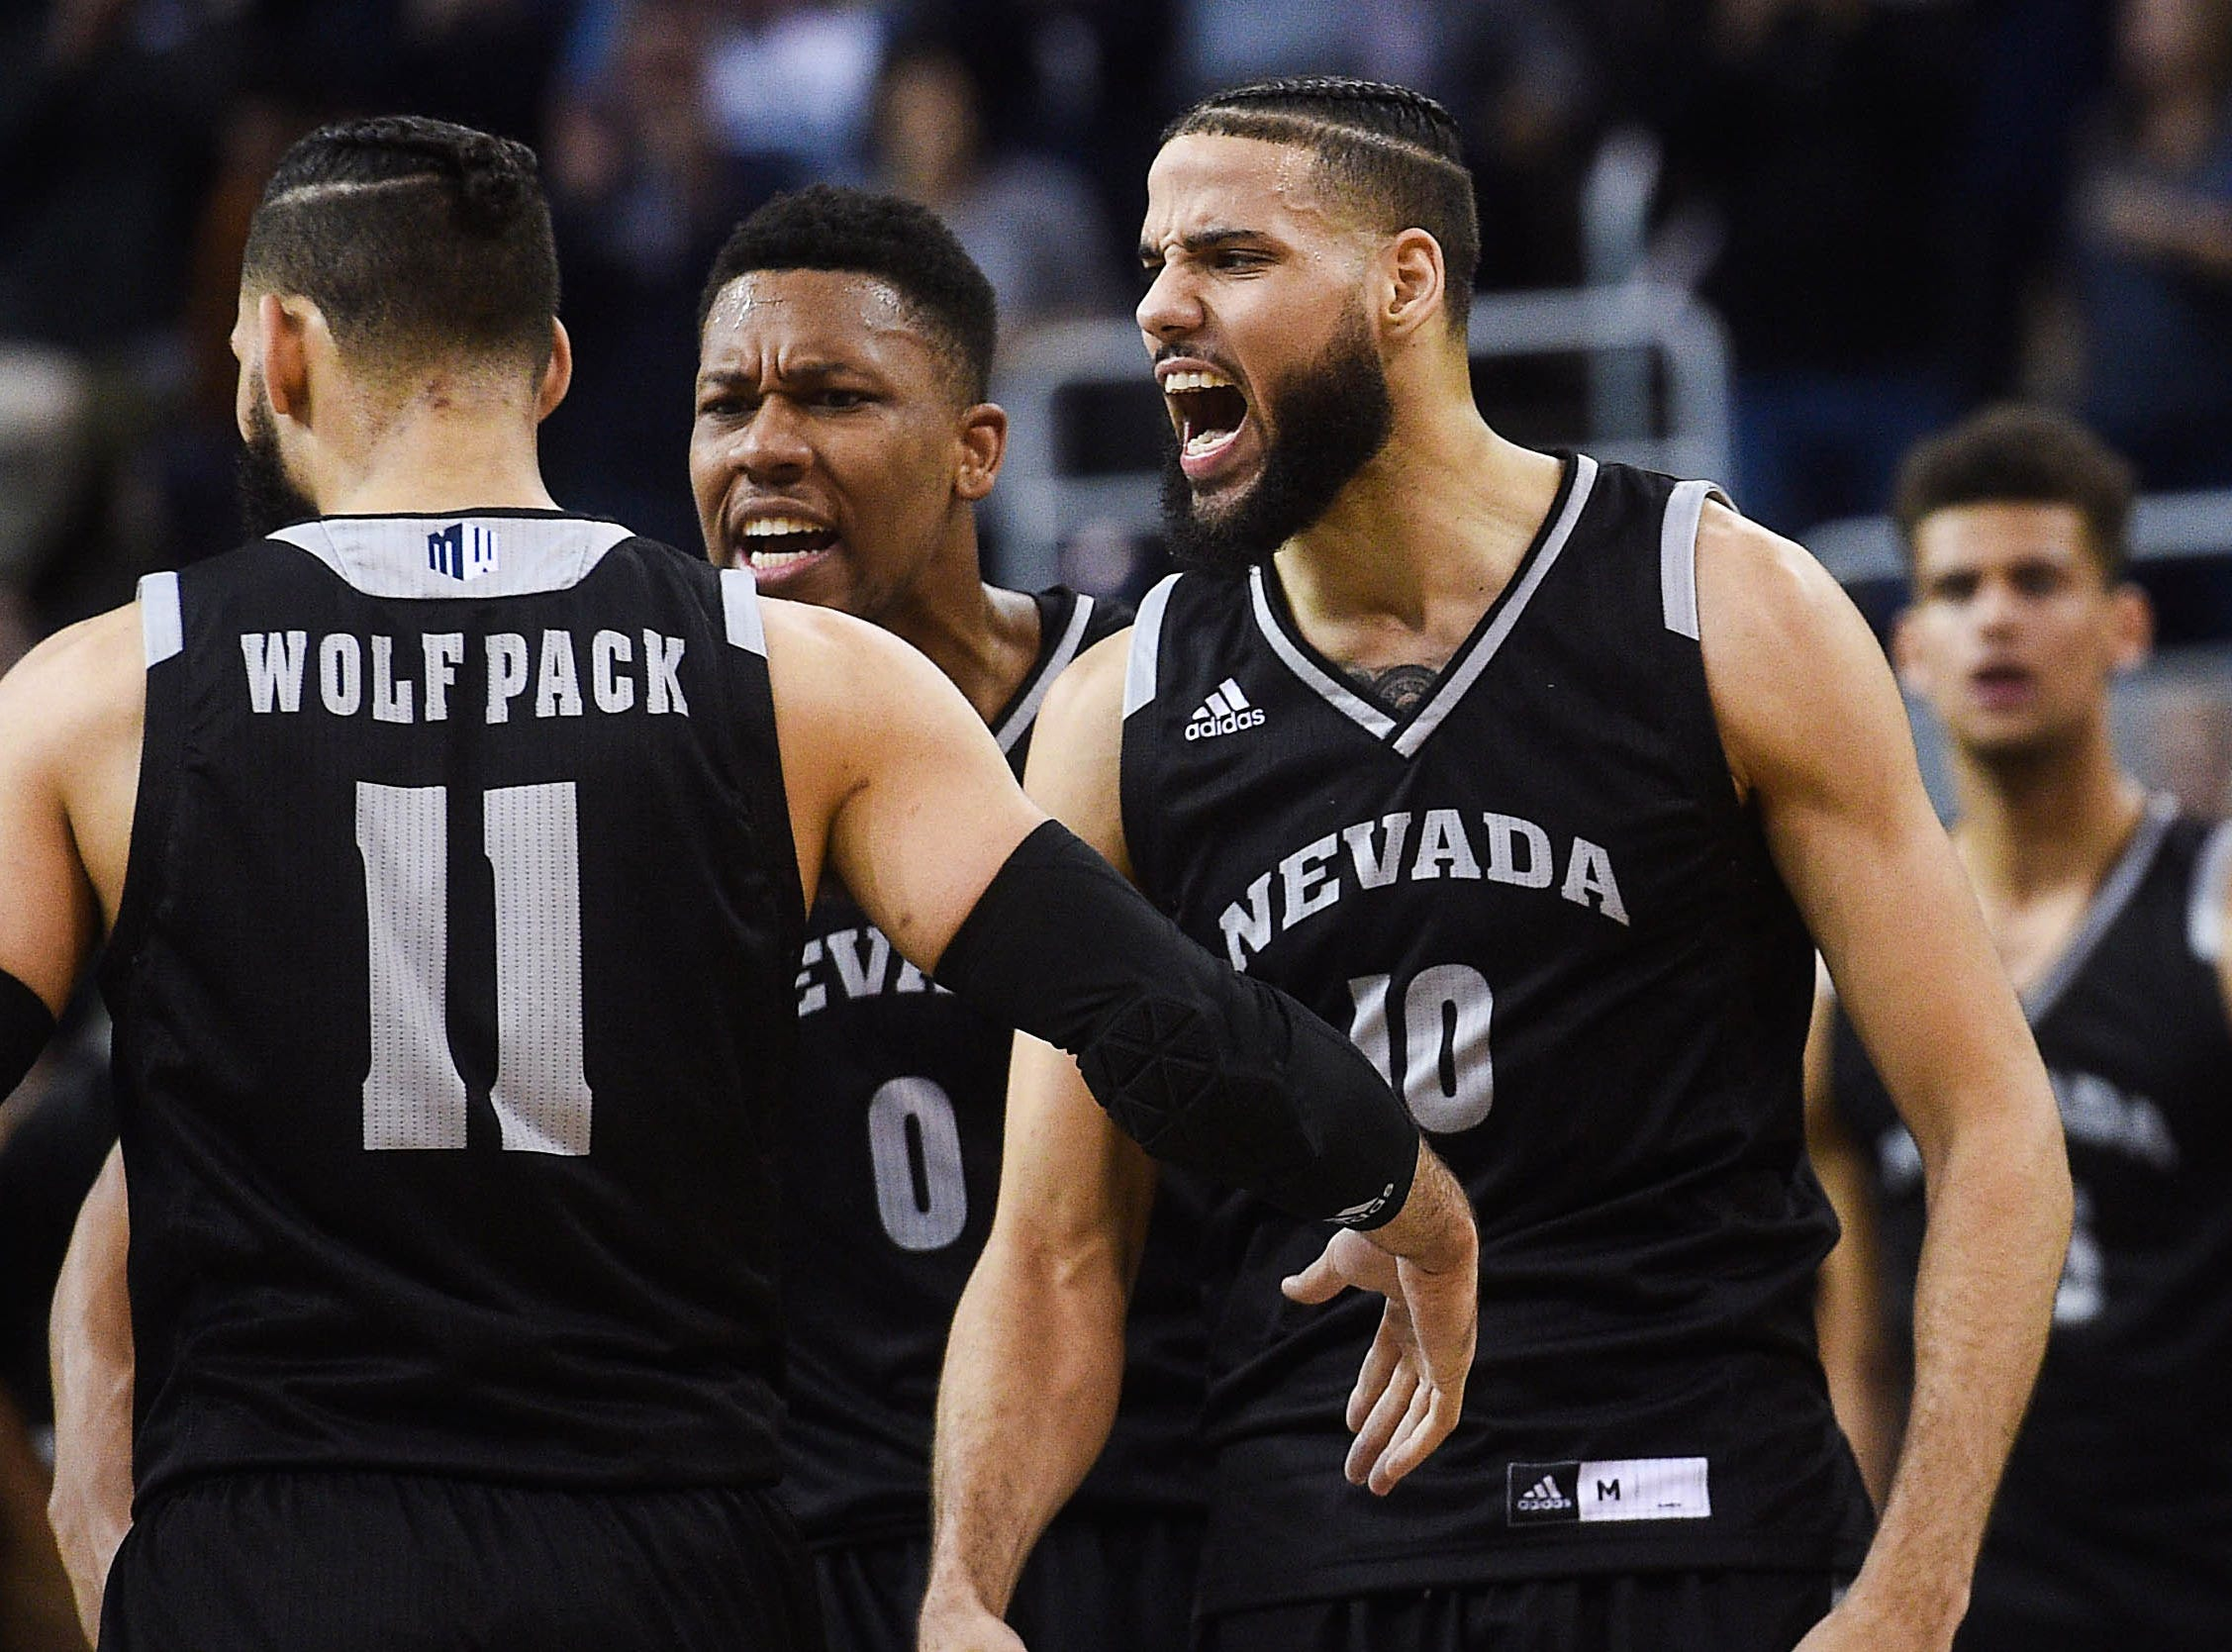 Nevada (29-4), No. 7 seed in West, at-large bid out of Mountain West Conference.